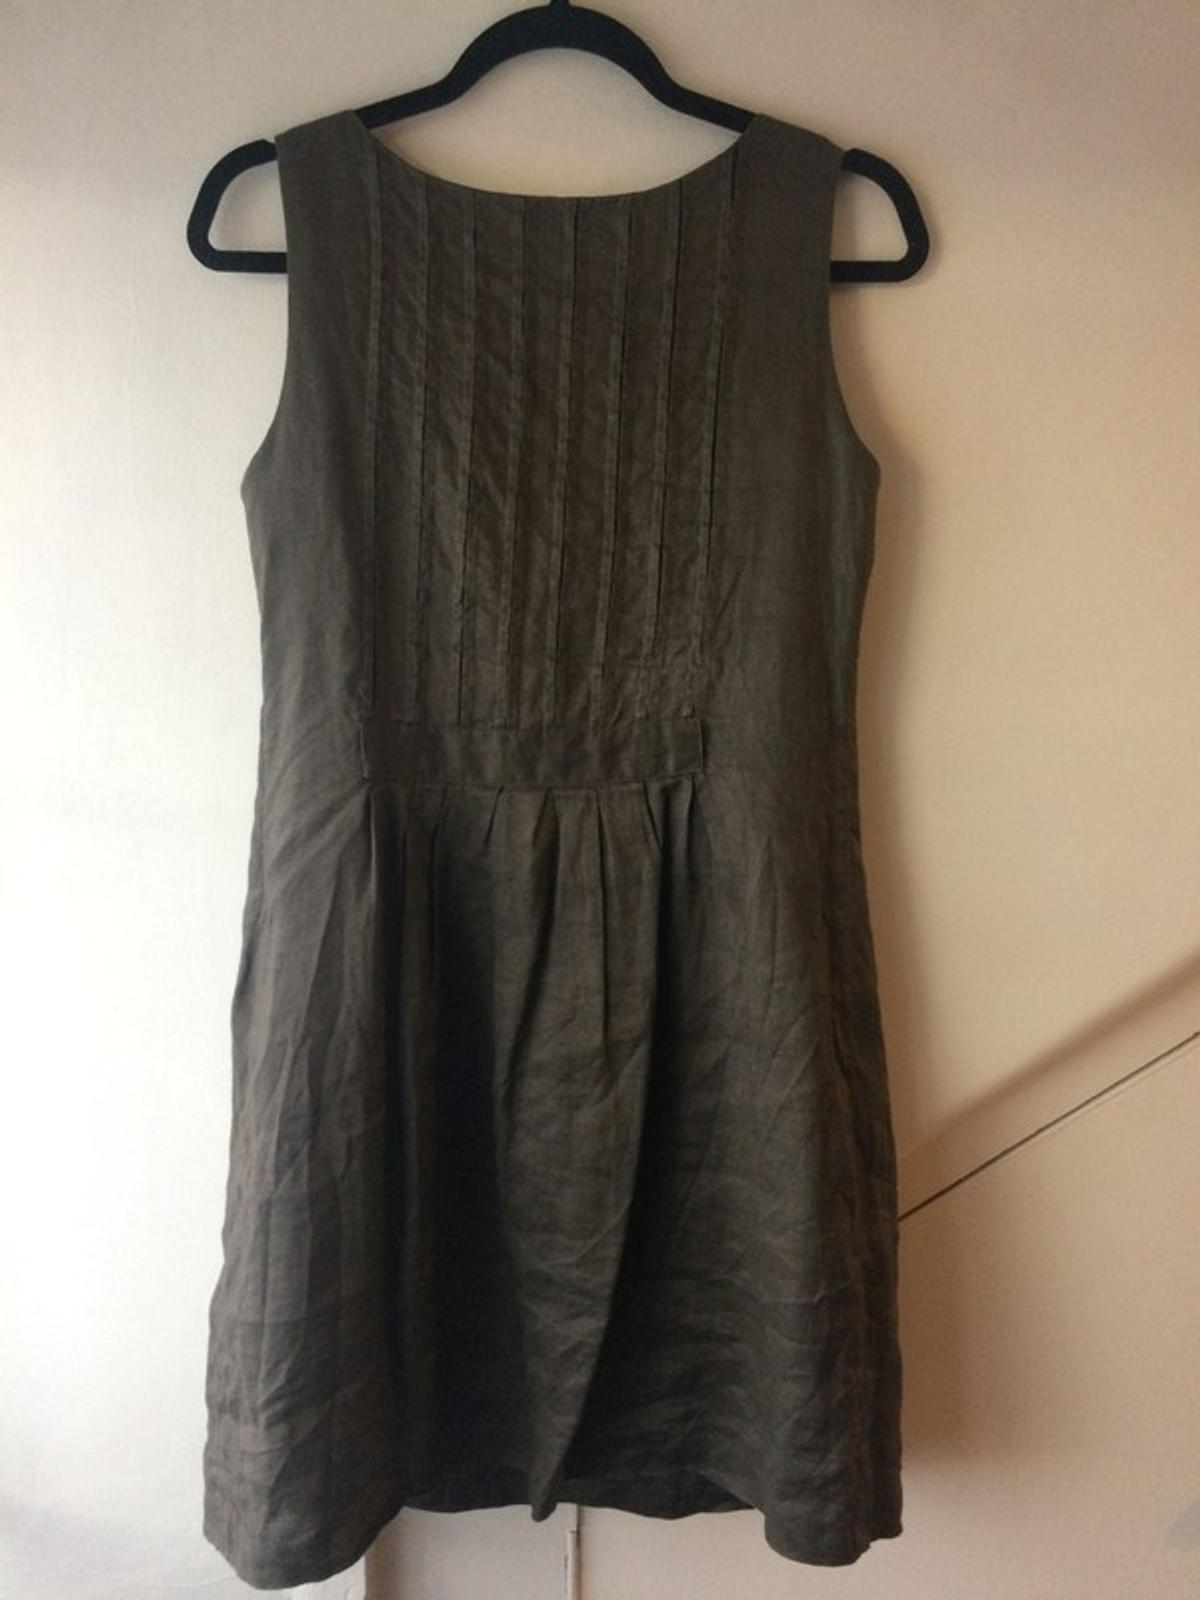 Zara Khaki Dress, Size S Excellent condition I can post